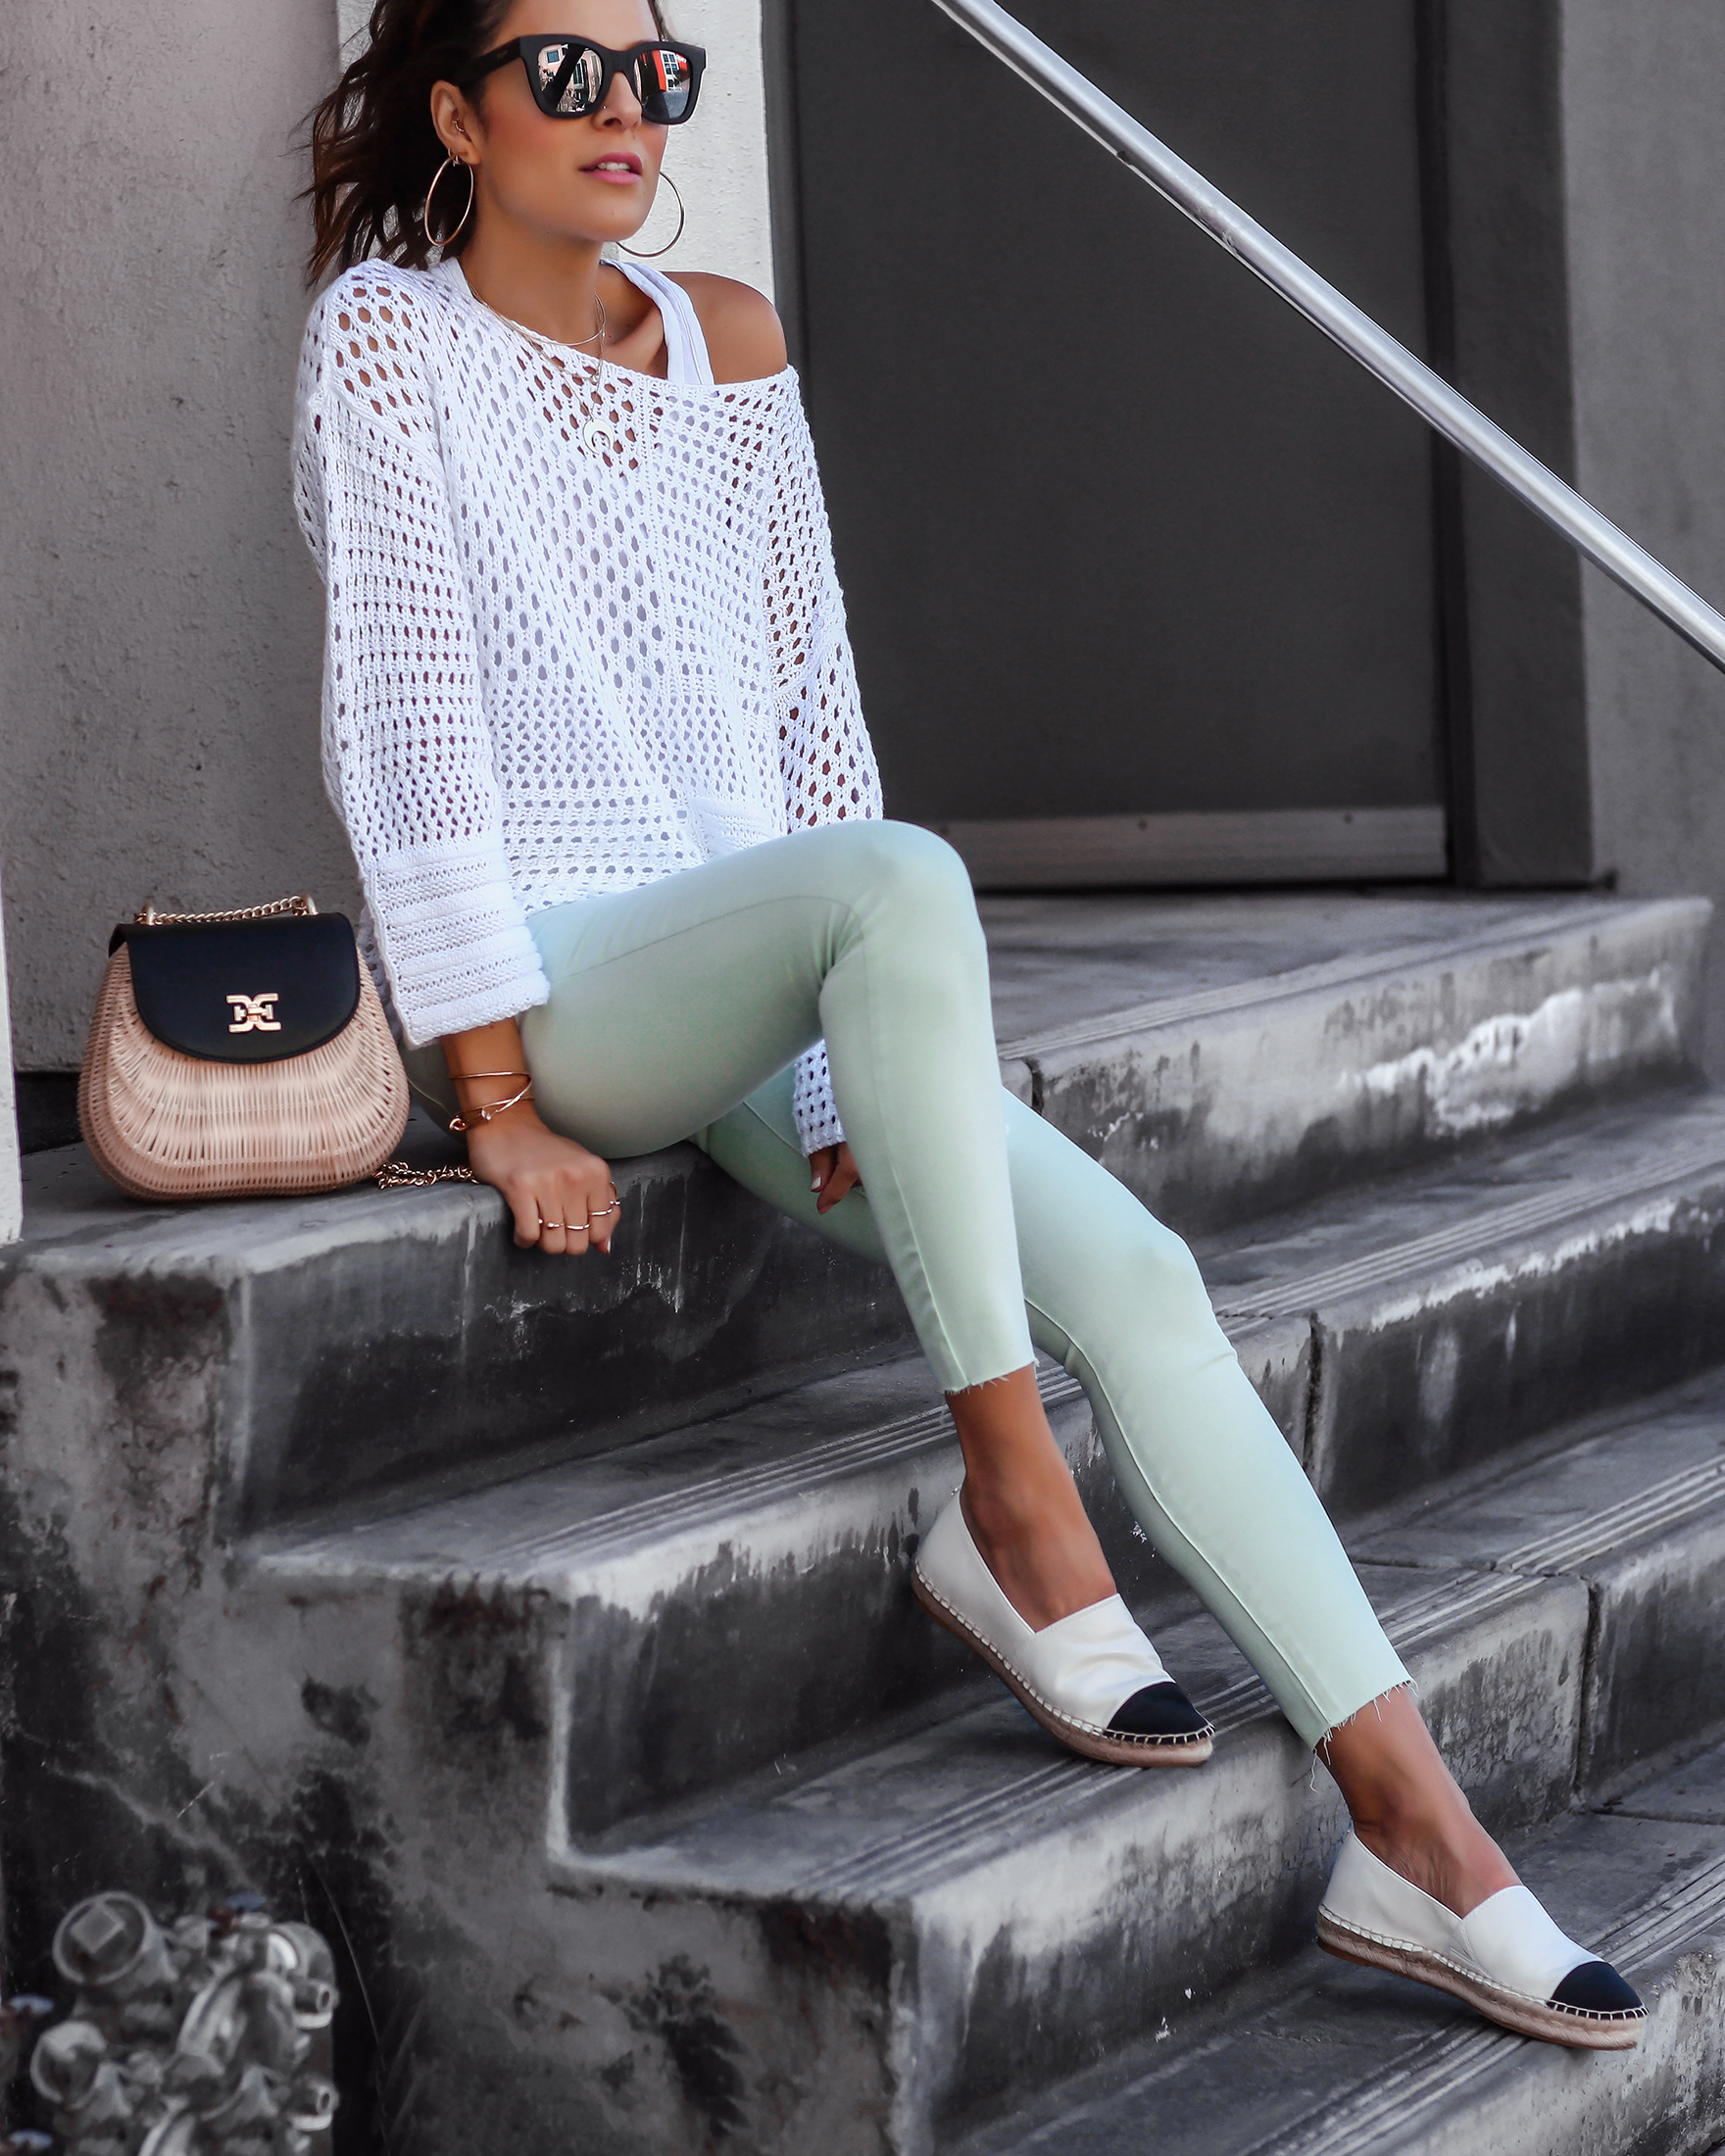 Brunette Woman in Sam Edelman Seafoam Green Jeans and Espadrilles.